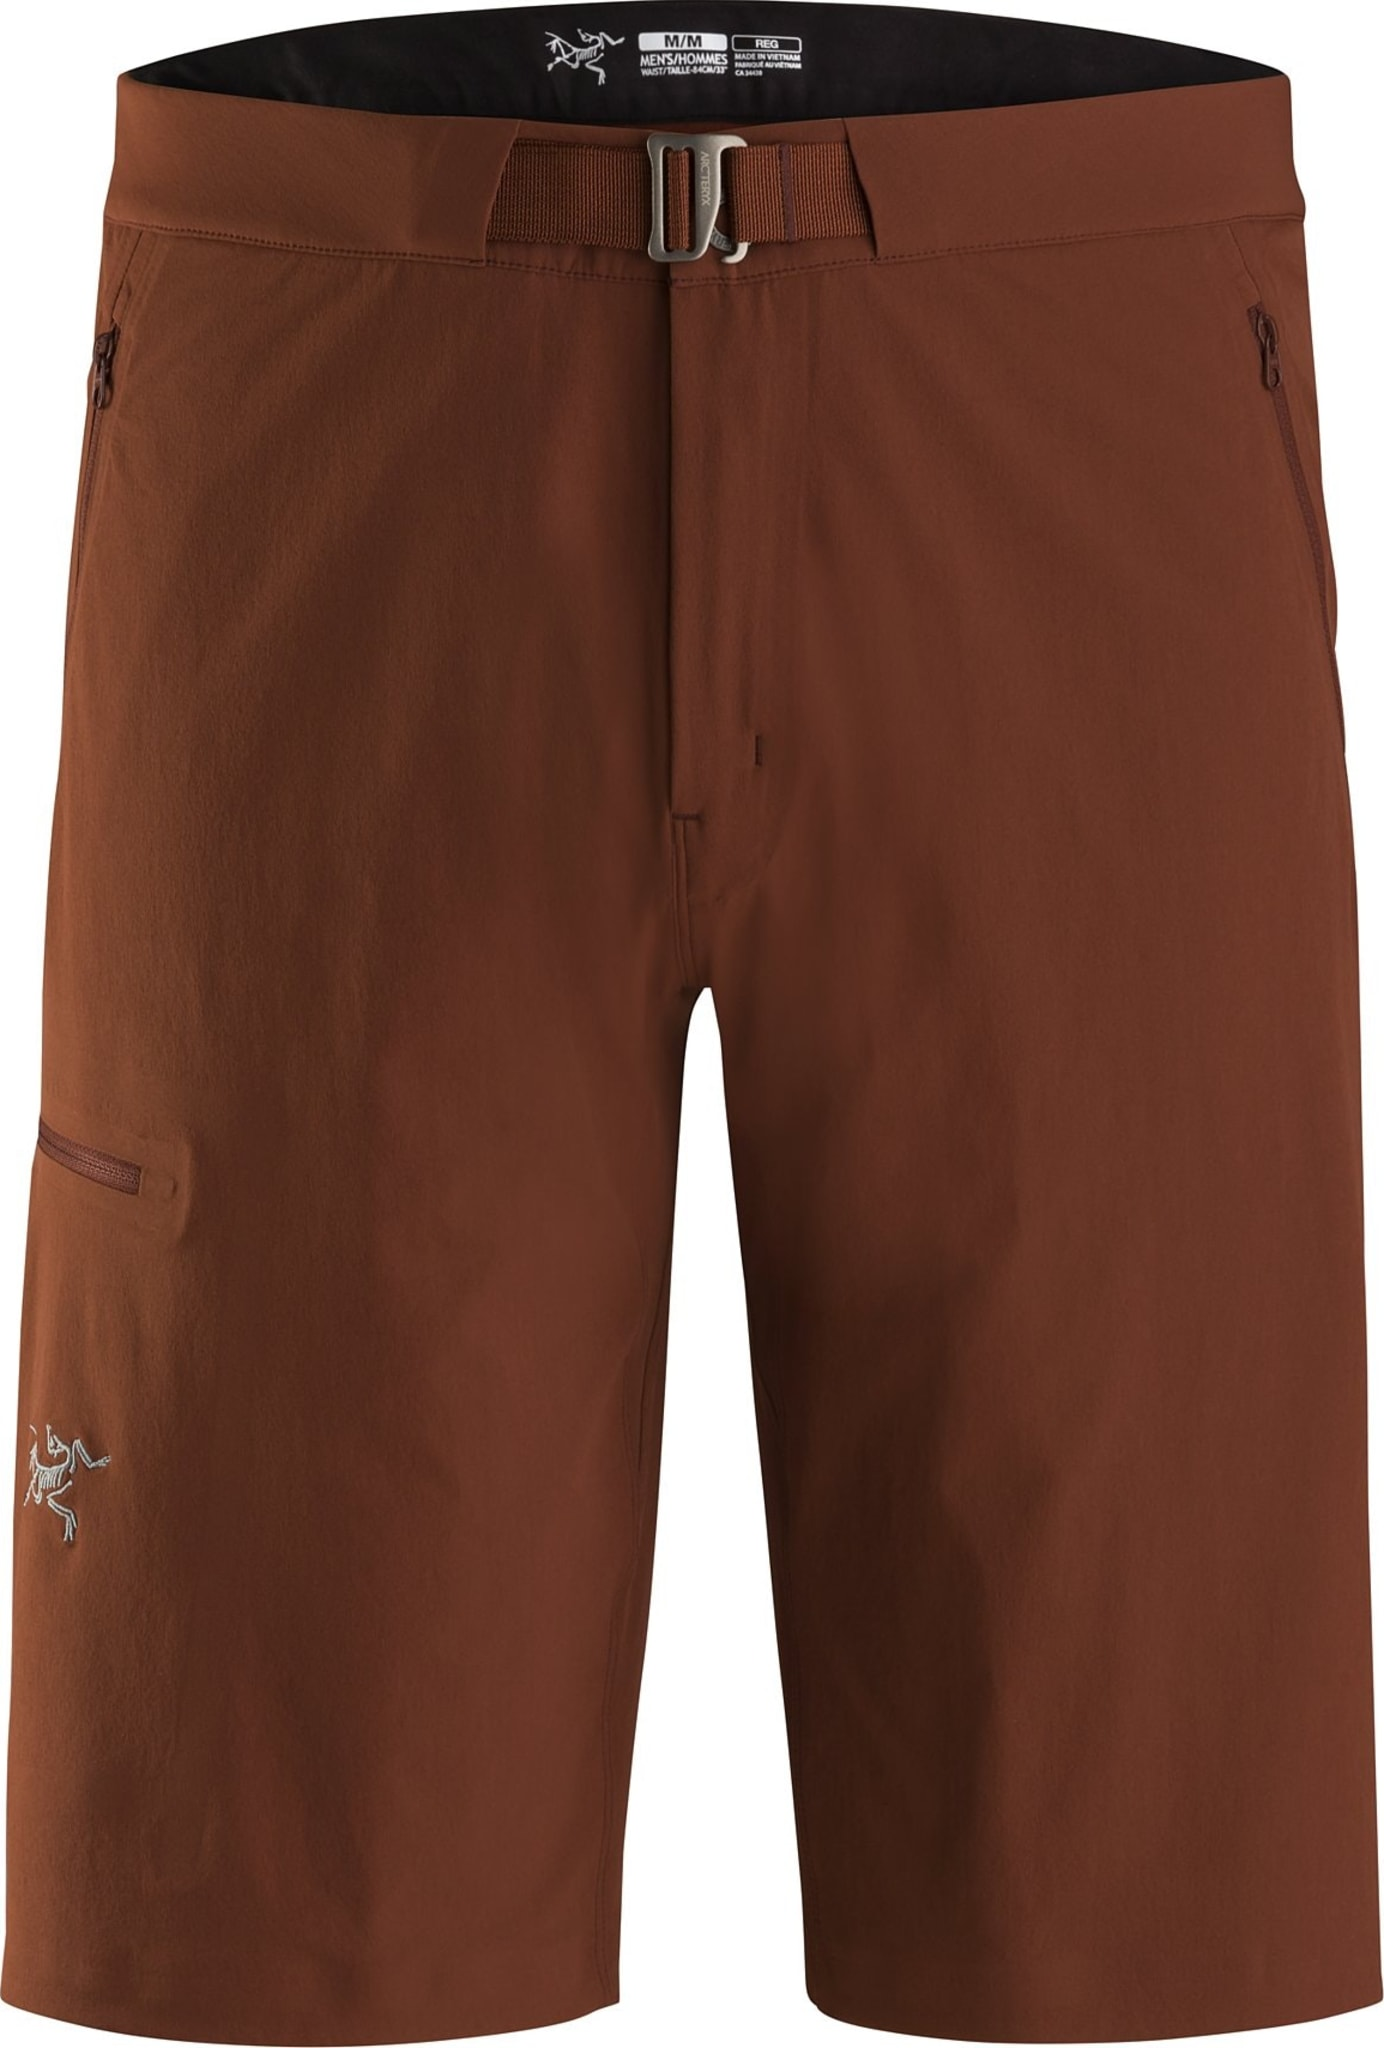 Gamma LT Short Men's